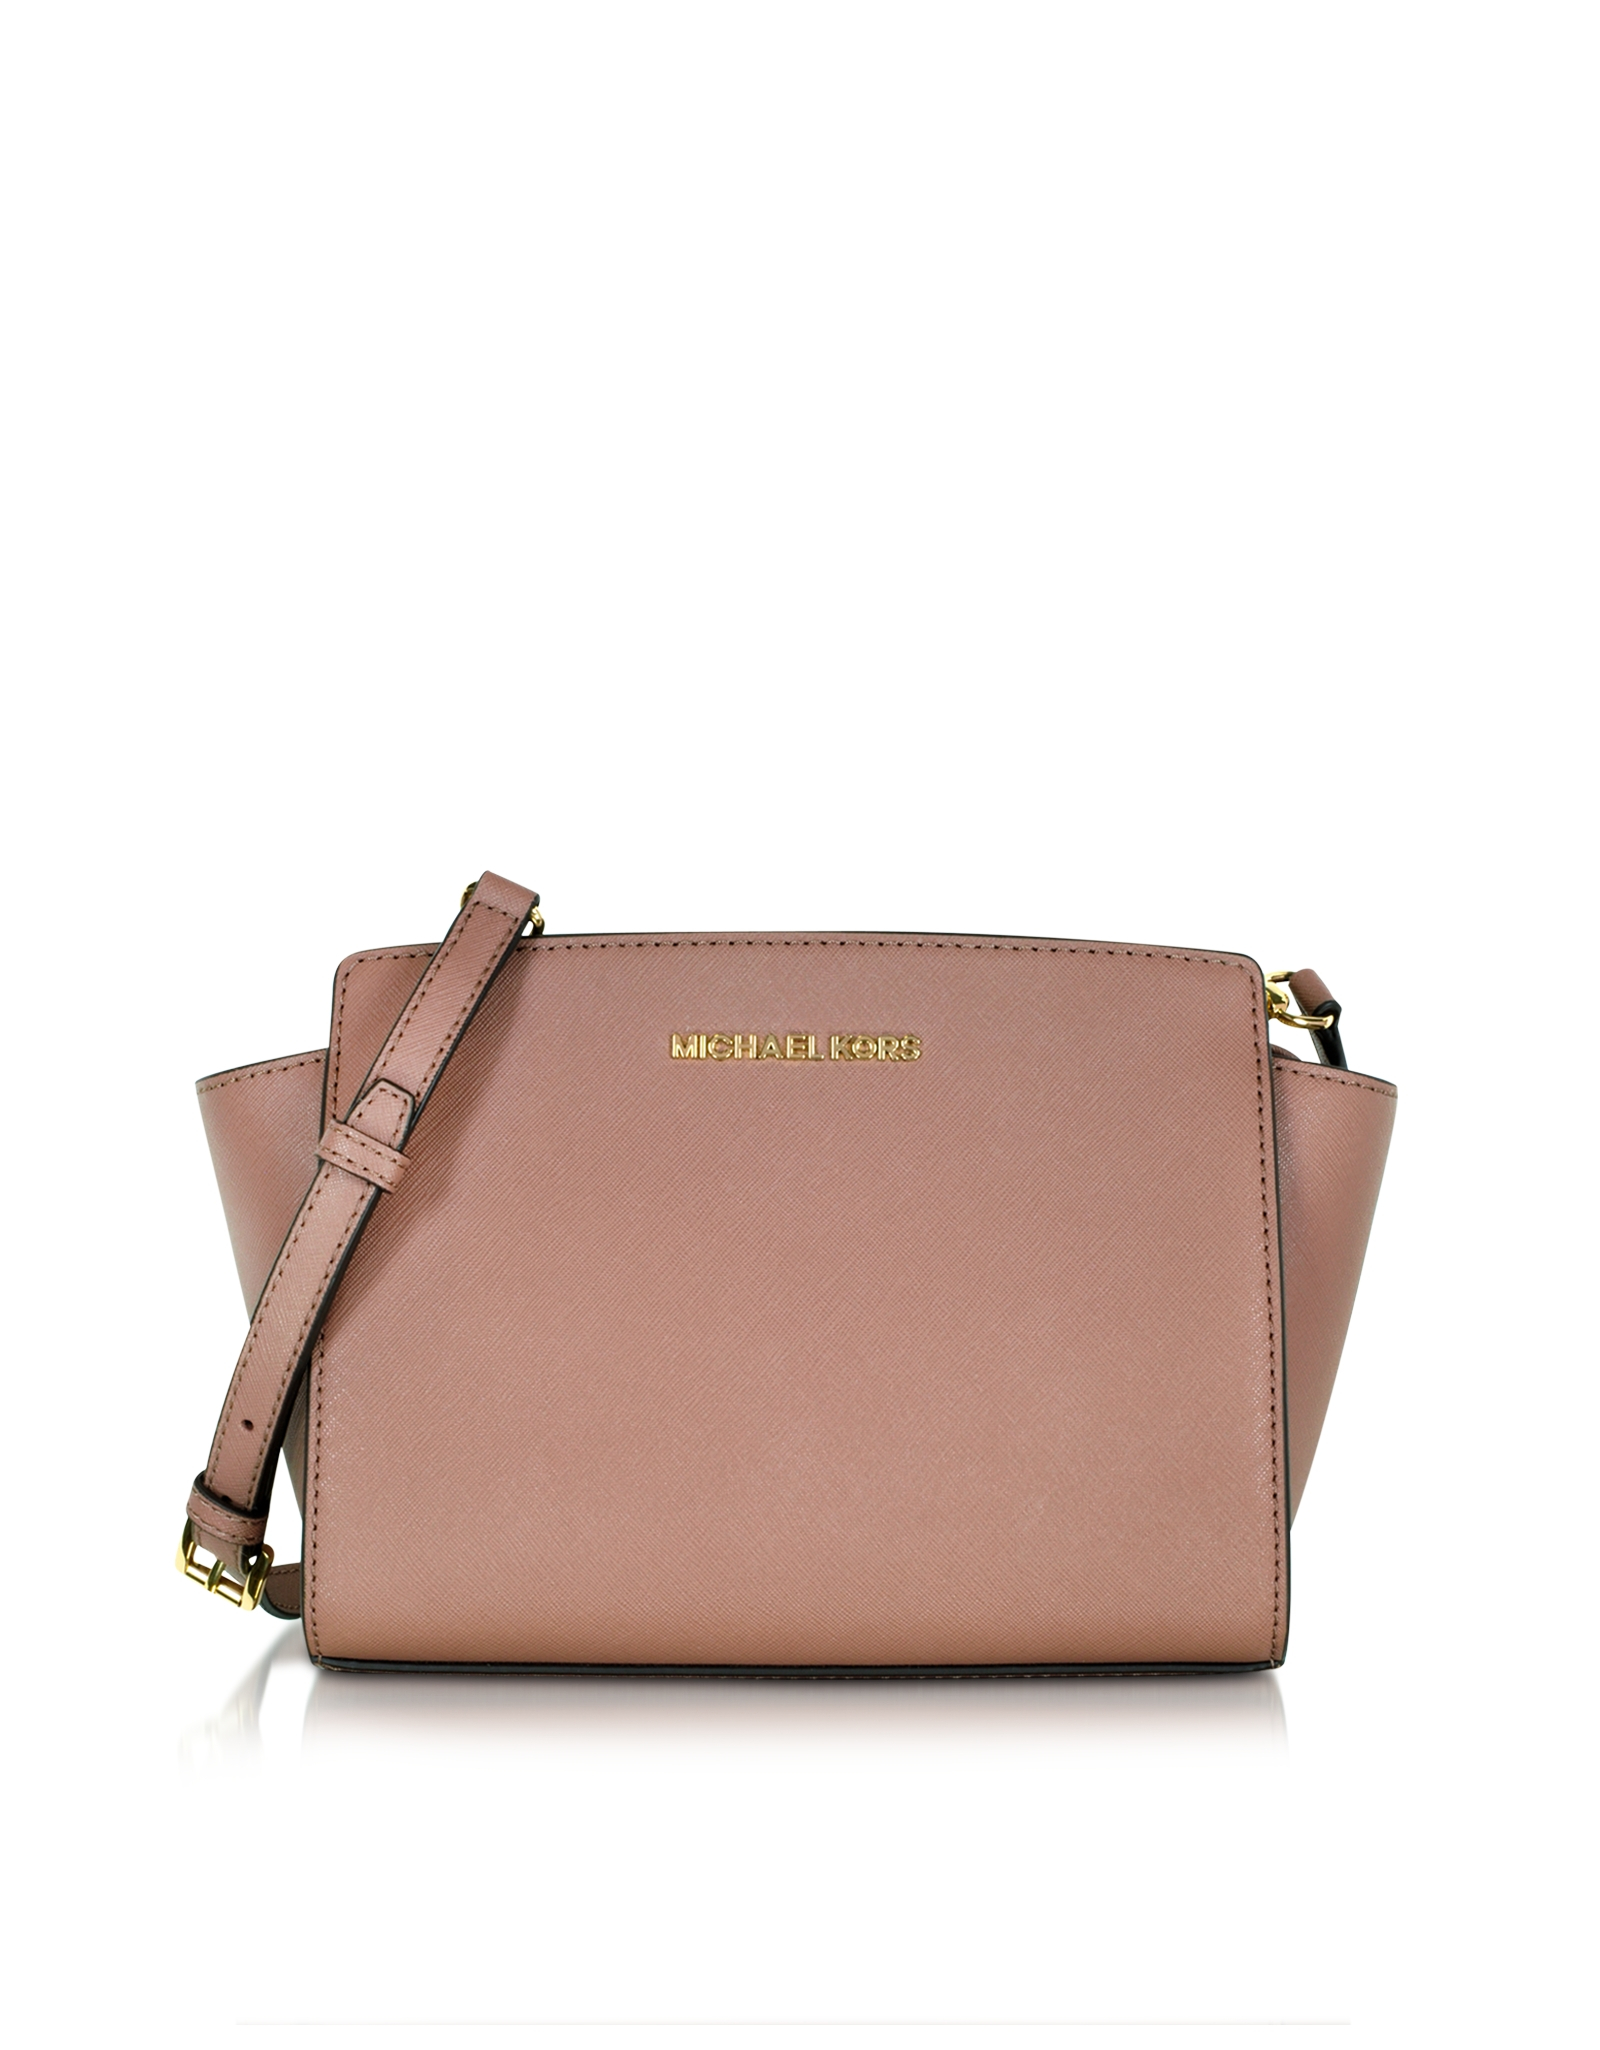 4bdc4e398521 Michael Kors Selma Saffiano Leather Medium Messenger Bag in Pink - Lyst